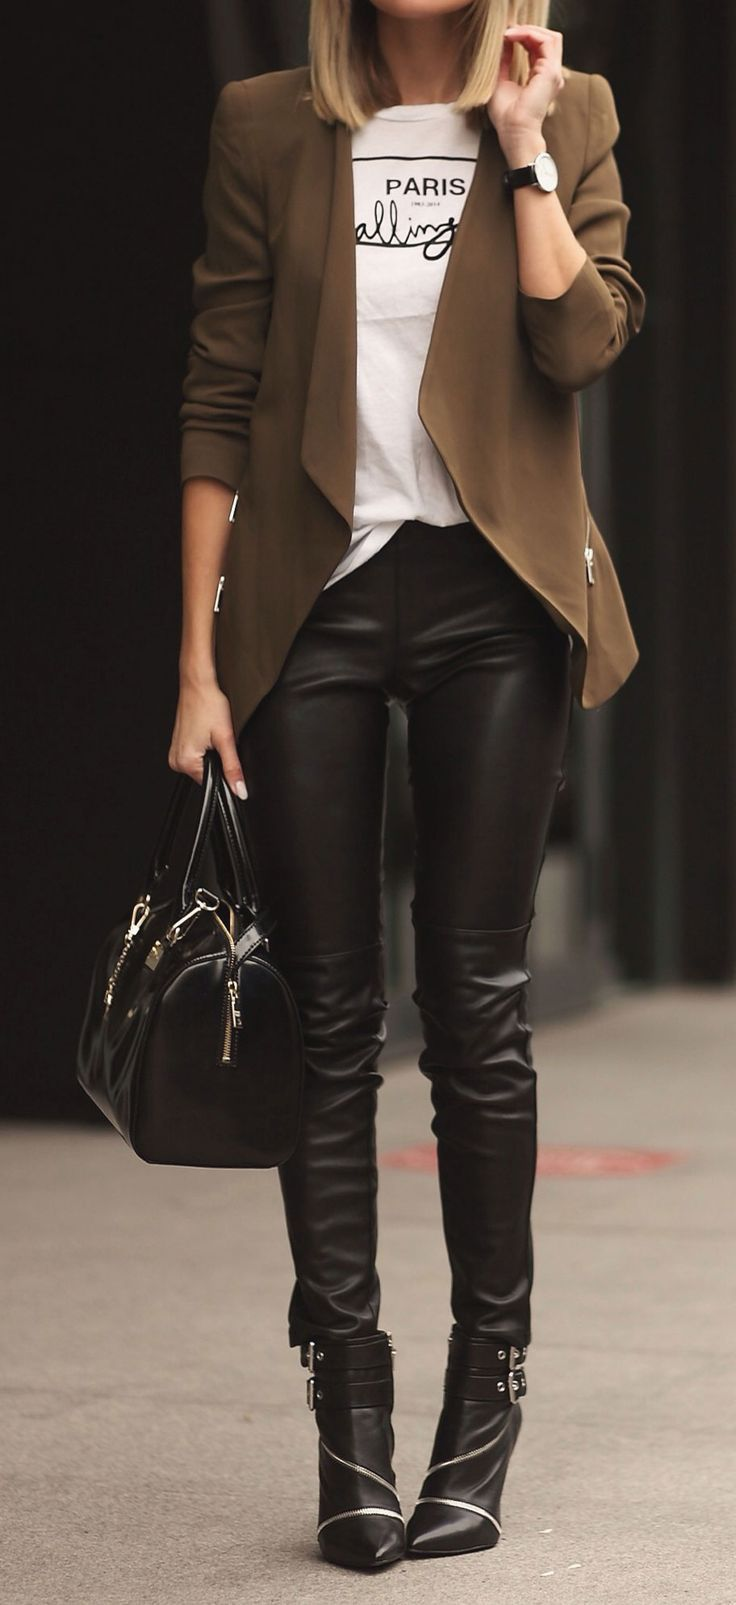 Pairing a brown open cardigan with black leather slim pants is a comfortable option for running errands in the city. go for a pair of black embellished leather booties.capitalize to va-va-voom your outfit.  Shop this look for $81:  http://lookastic.com/women/looks/ankle-boots-satchel-bag-skinny-pants-open-cardigan-crew-neck-t-shirt-watch/6747  — Black Embellished Leather Ankle Boots  — Black Leather Satchel Bag  — Black Leather Skinny Pants  — Brown Open Cardigan  — White and Black Print ...